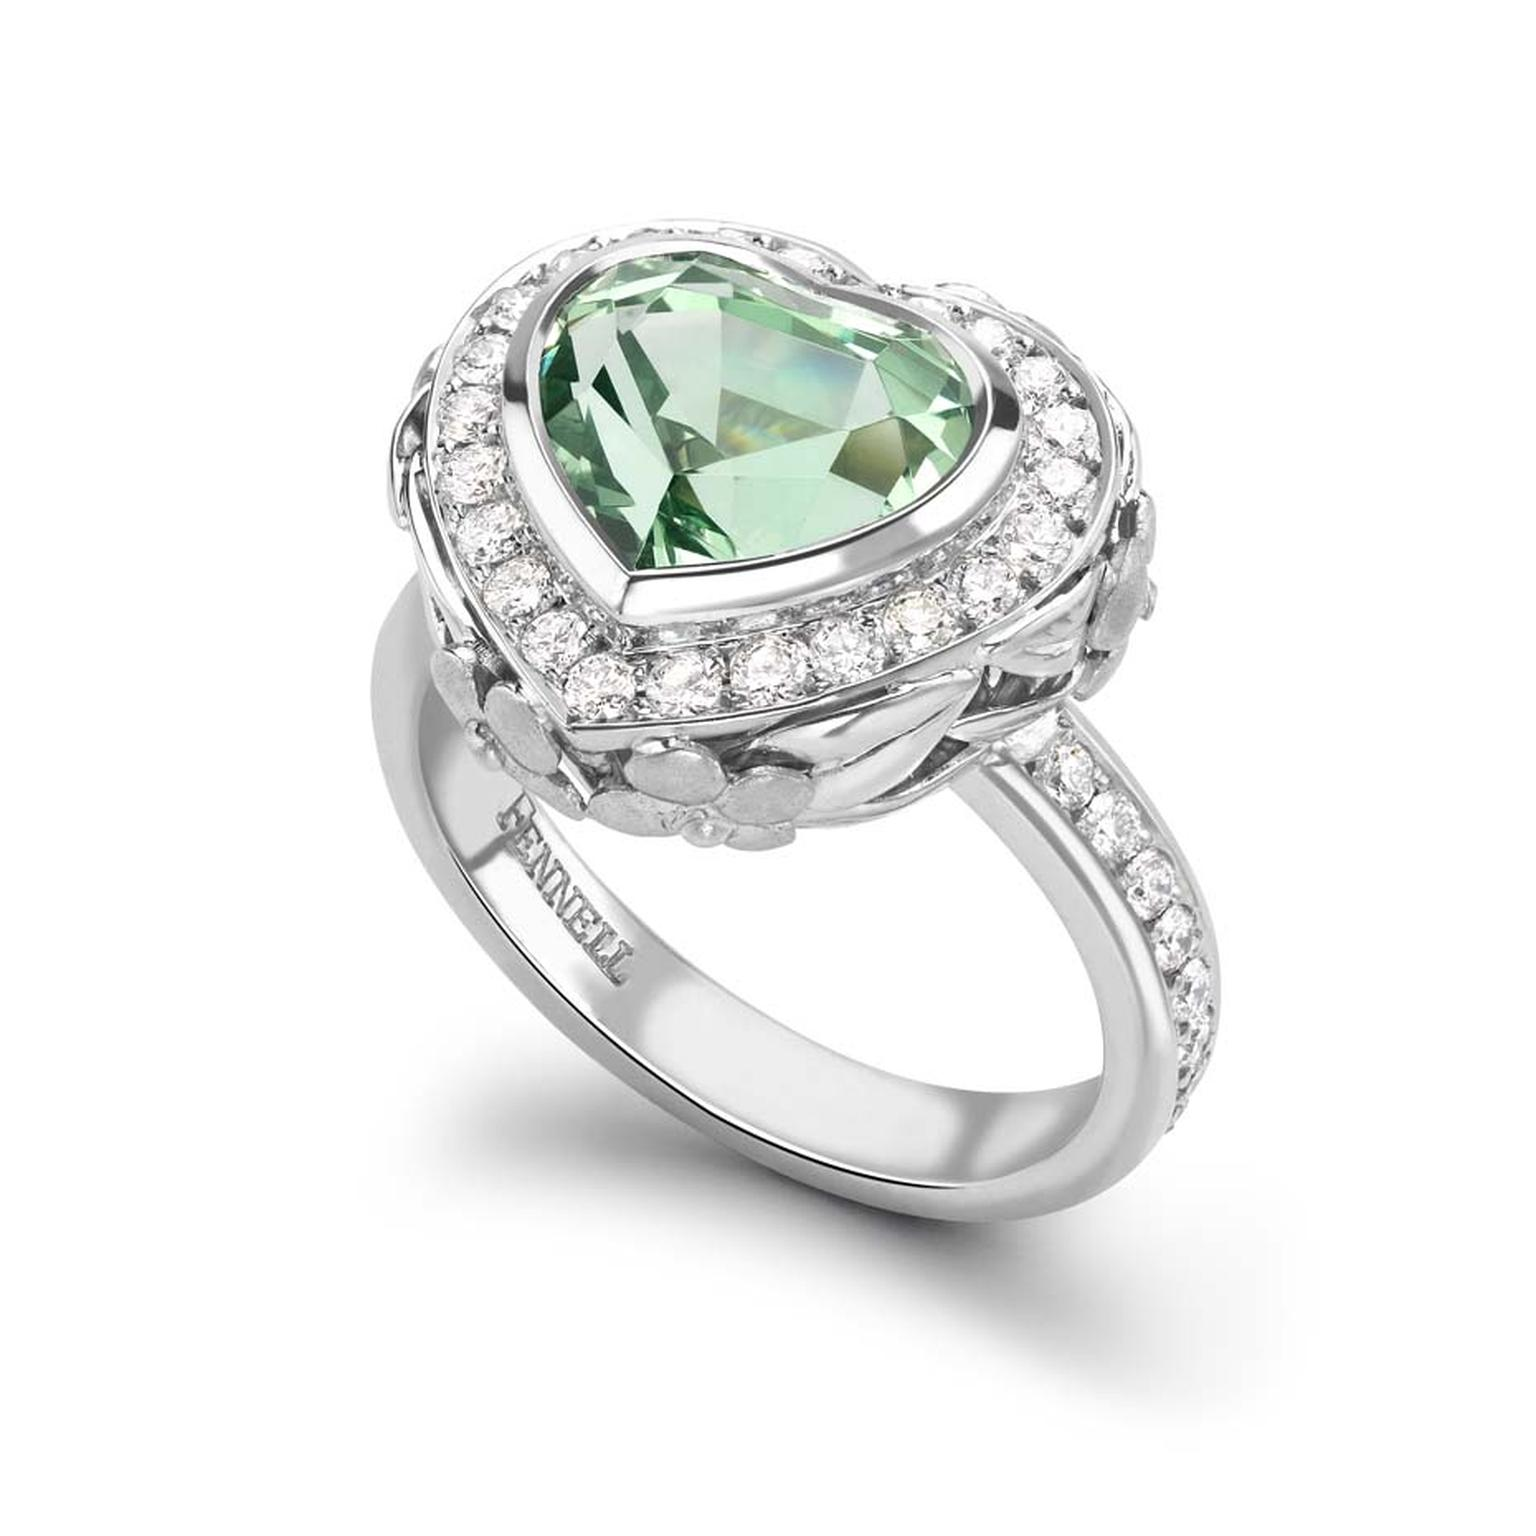 Theo Fennell heart-shaped white gold engagement ring featuring a beautiful 4.3 carat green tsavorite garnet and diamonds.